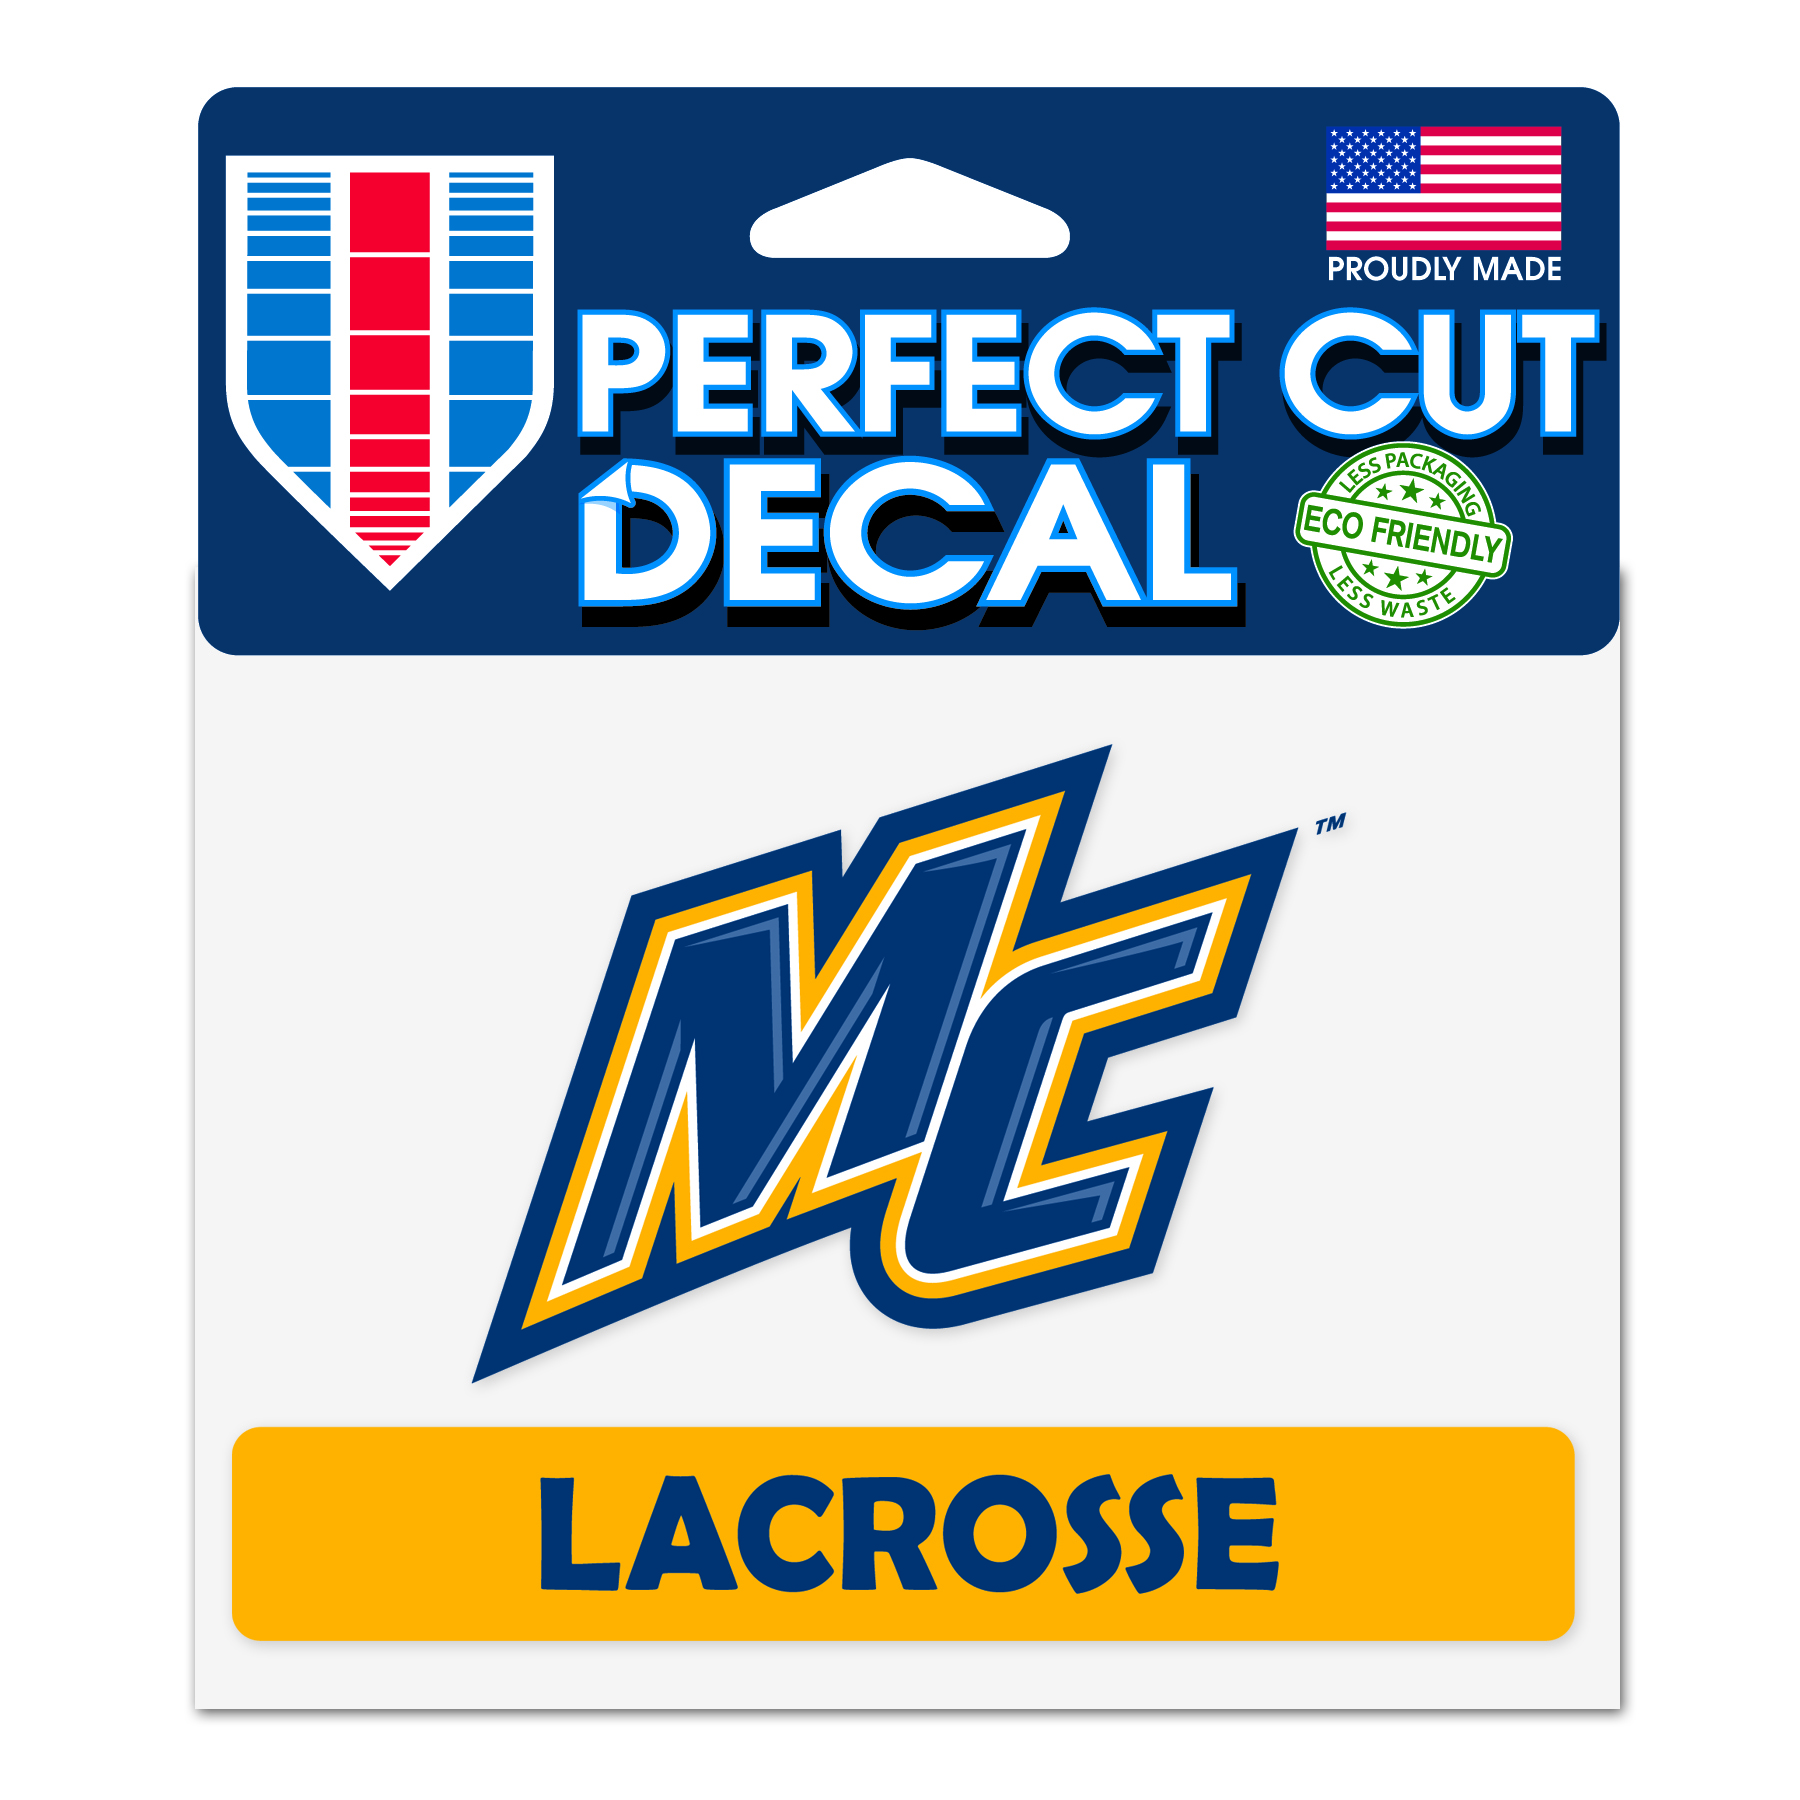 Decal - Lacrosse